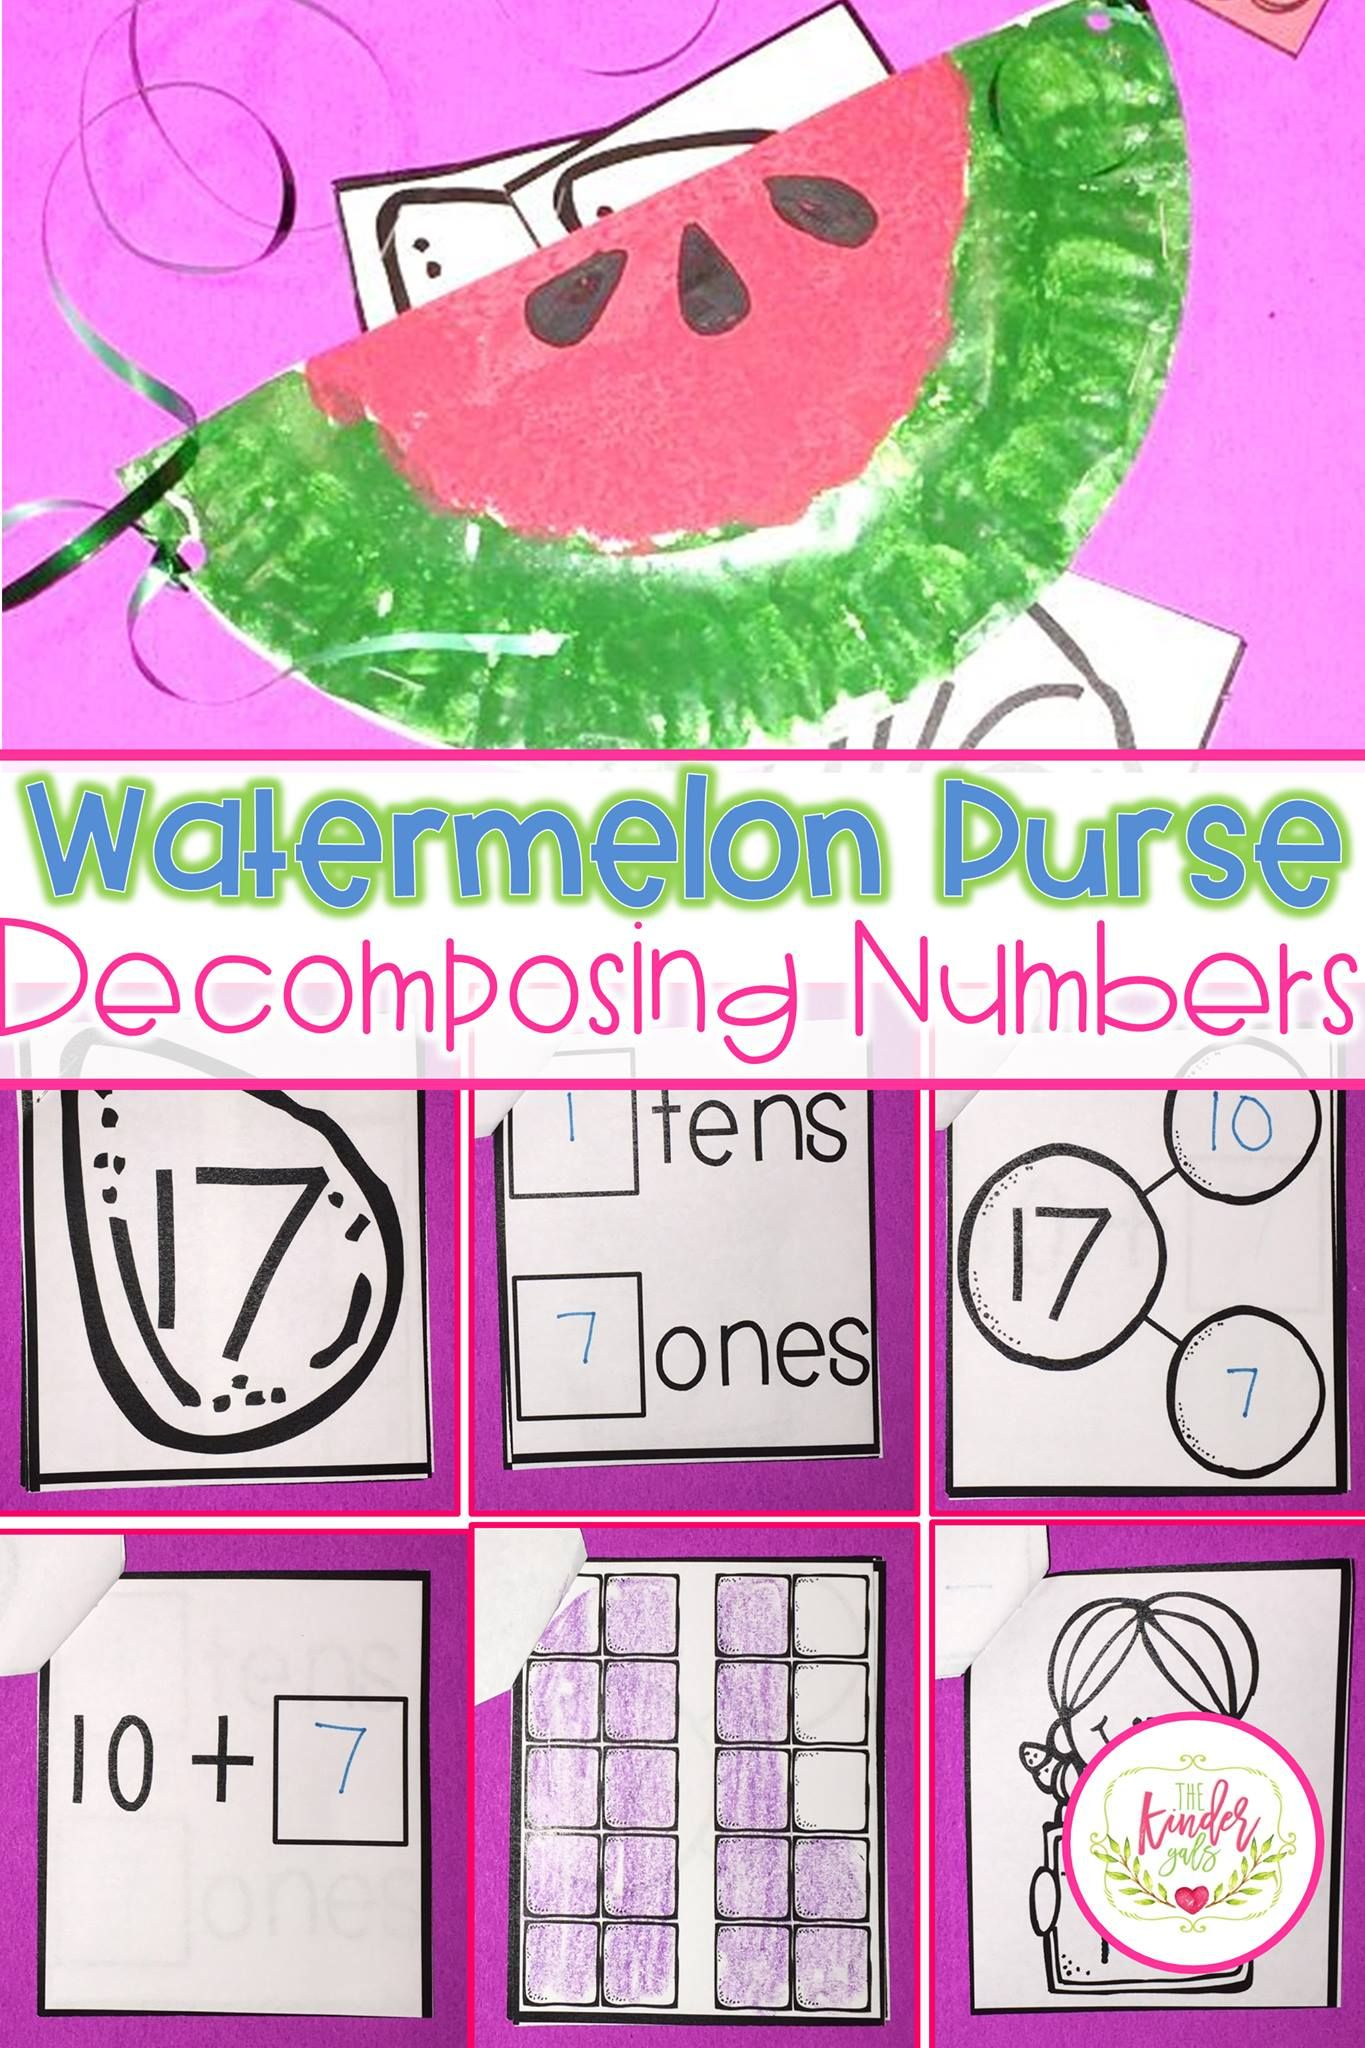 Watermelon Purse Activity For Decomposing Numbers Kindergarten Math Lesson Ideas Small Group Math Activities Small Group Math Kindergarten Math Lesson [ 2048 x 1365 Pixel ]